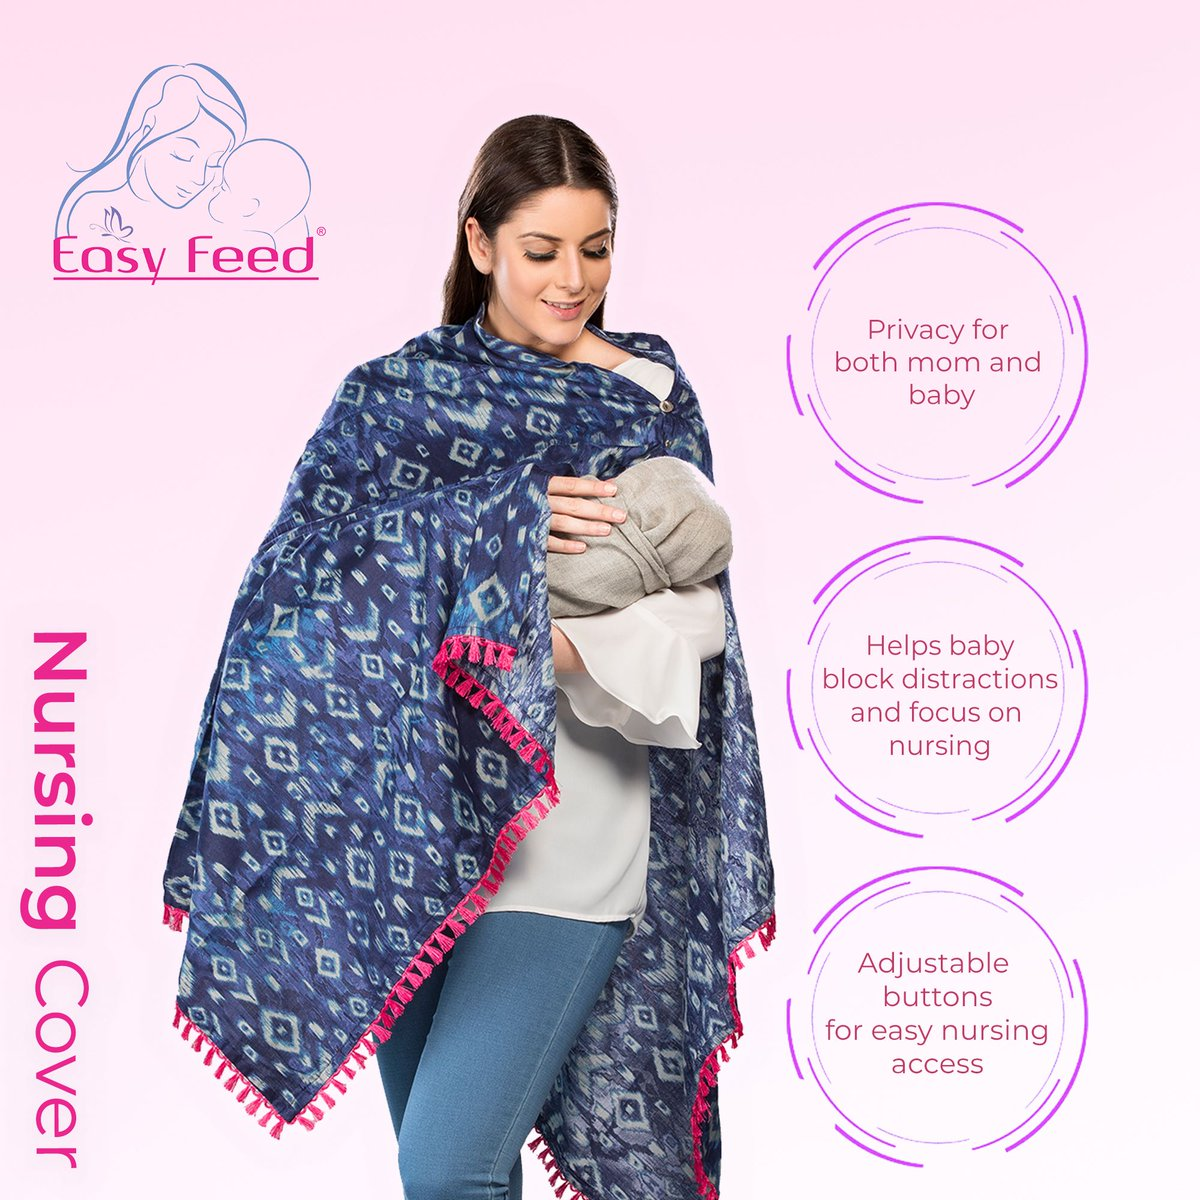 Becoming a Mother makes you realize you can do anything! Show your love for baby in Easyfeed Nursing Style. Shop the look at http://www.easyfeed.in  #EasyFeed #momtobe #moms #maternityfashion #maternitystyles #maternitydresses #dressesforwomens #preggers #nursing #dressespic.twitter.com/1AjZOQfSxT